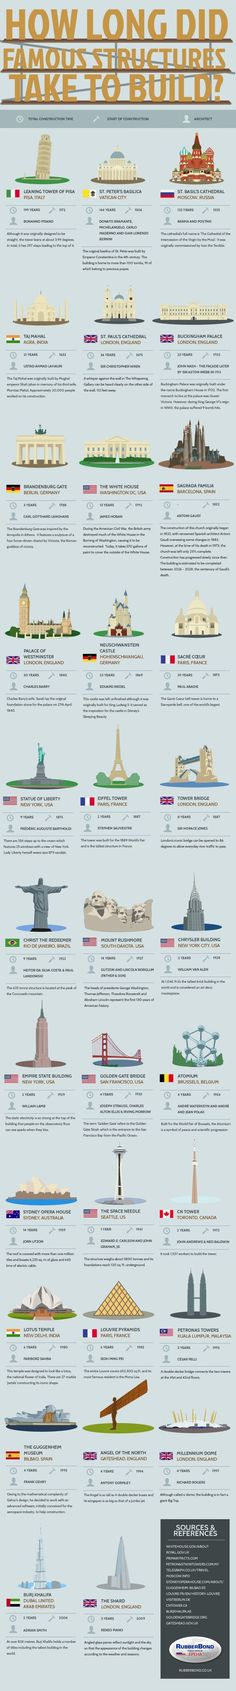 How Long Did Famous Structures Take to Build? INTRIGUING ARCHITECTURE long pin full of information about history of famous buildings across the centuries. World History, Art History, History Of Education, Teaching History, Famous Structures, Famous Buildings, Build A Better World, Thinking Day, Civil Engineering